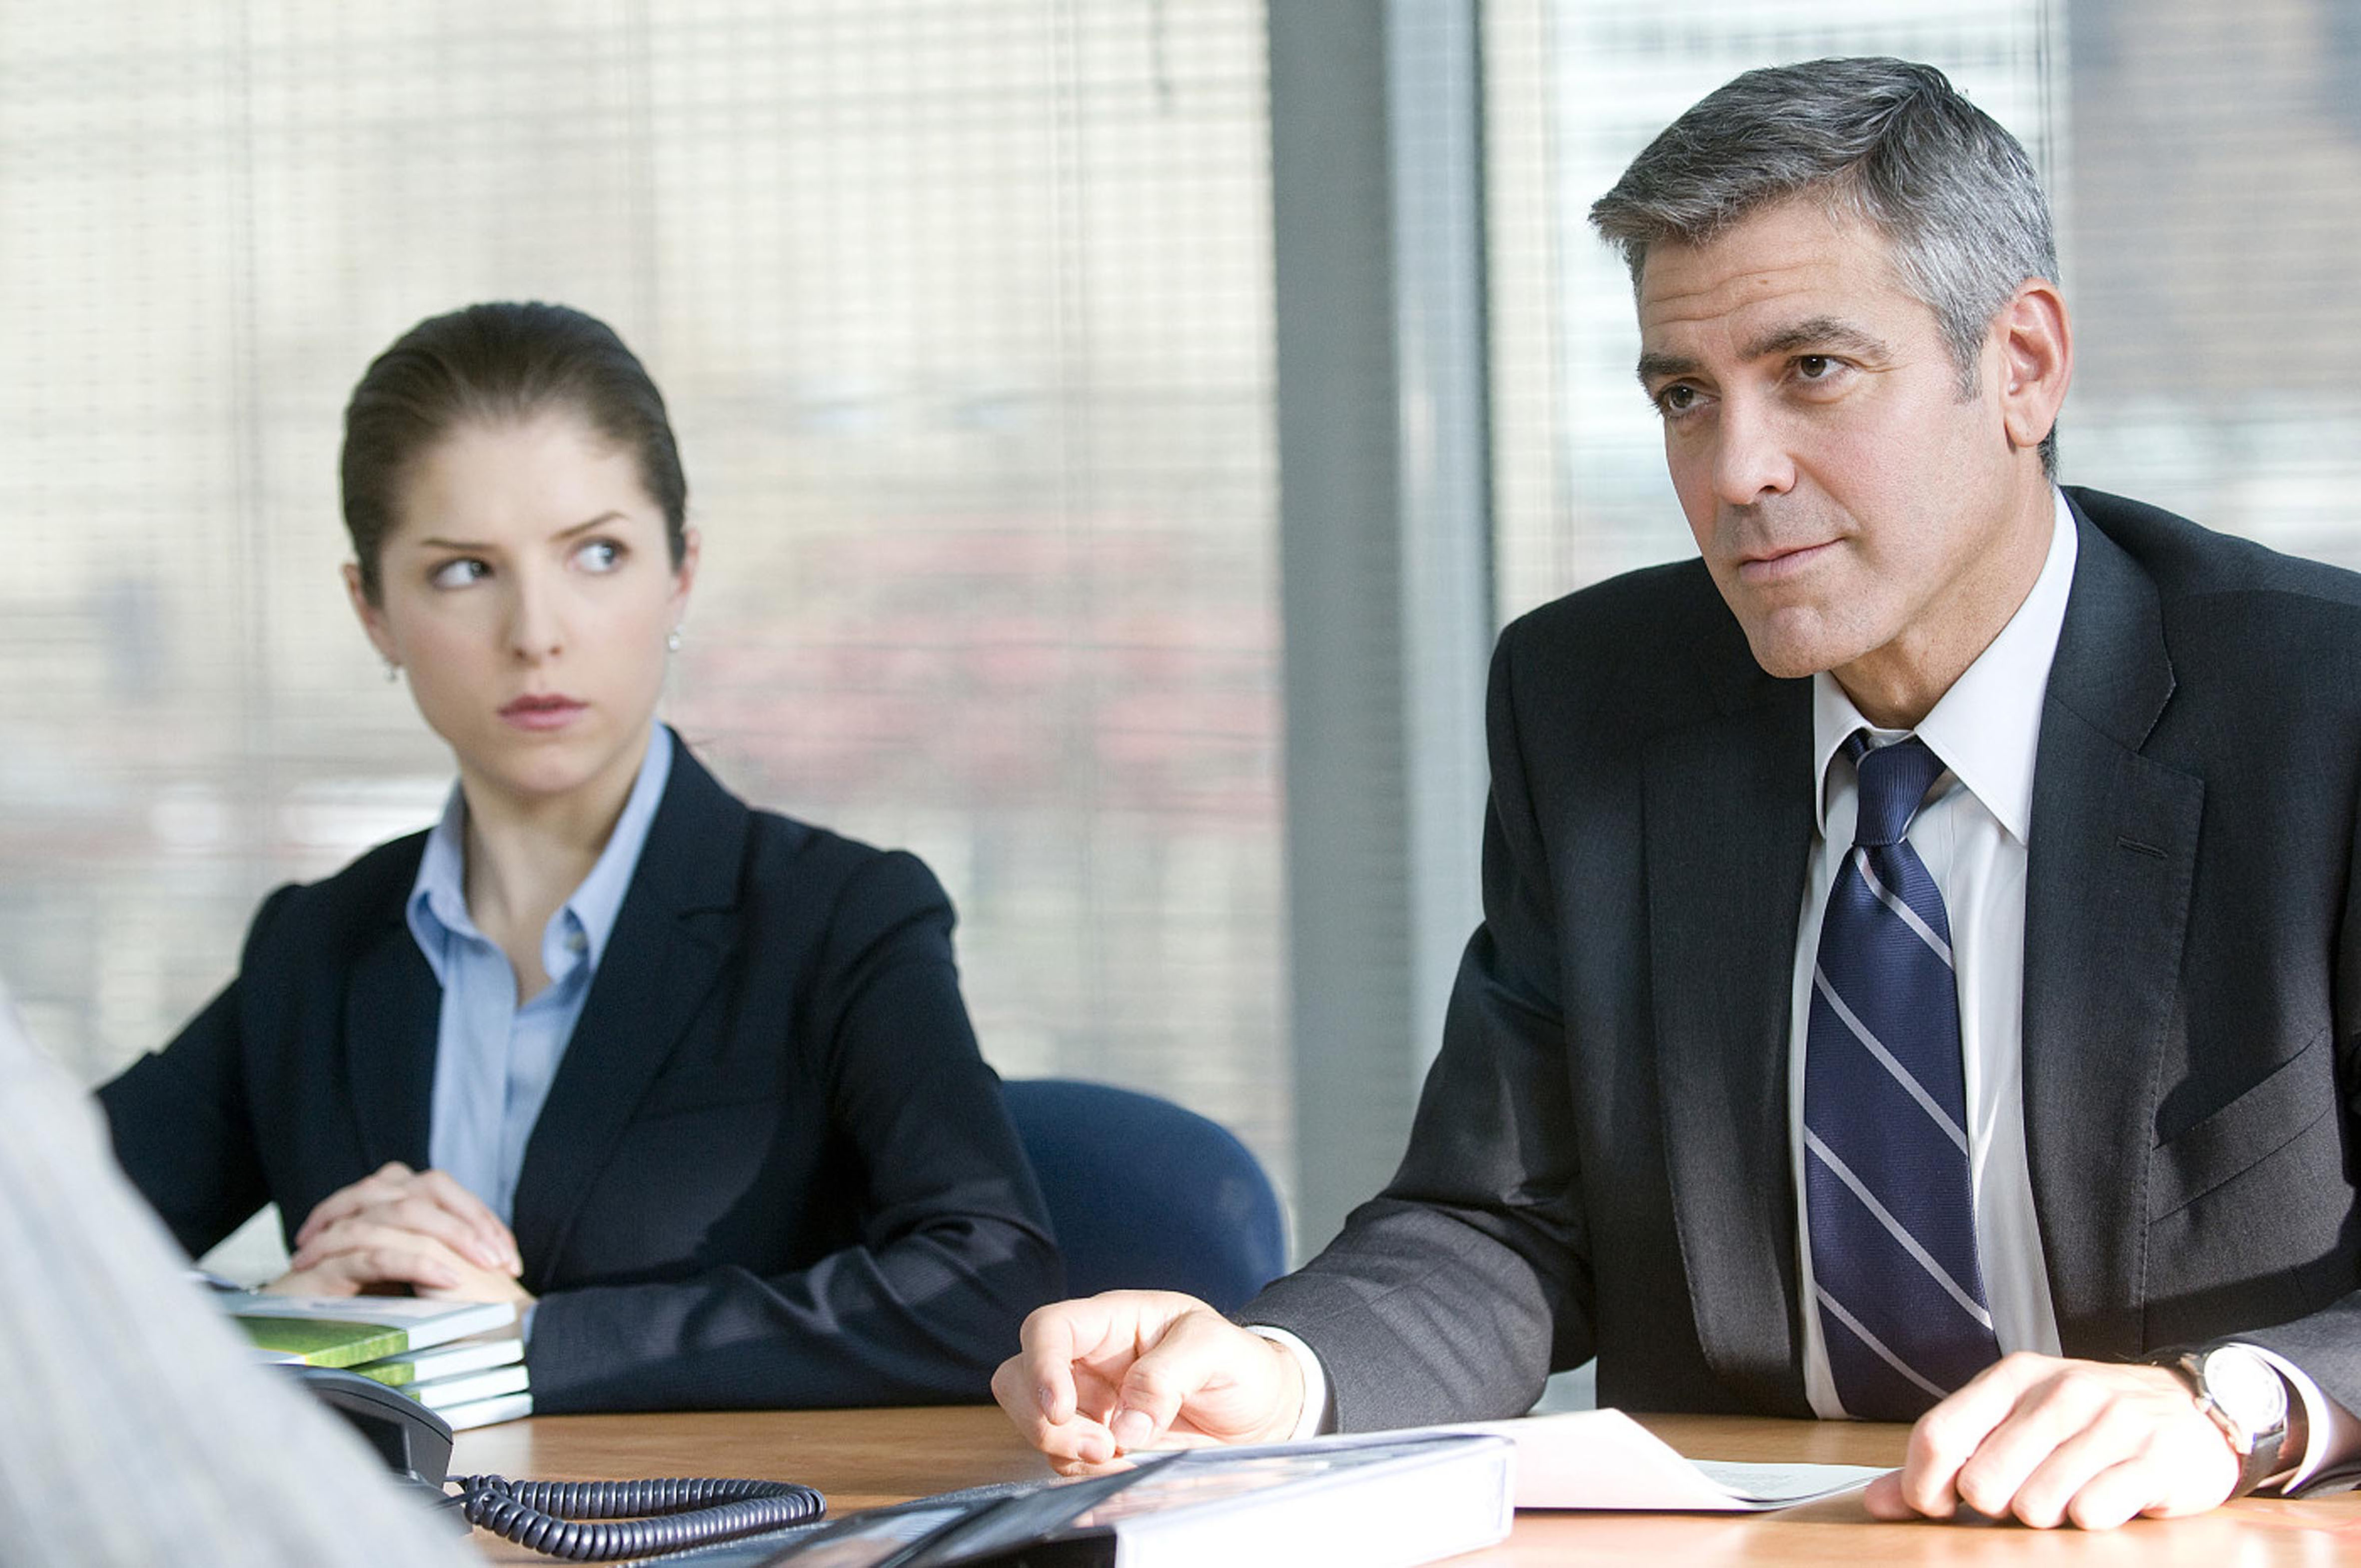 George Clooney and Anna Kendrick